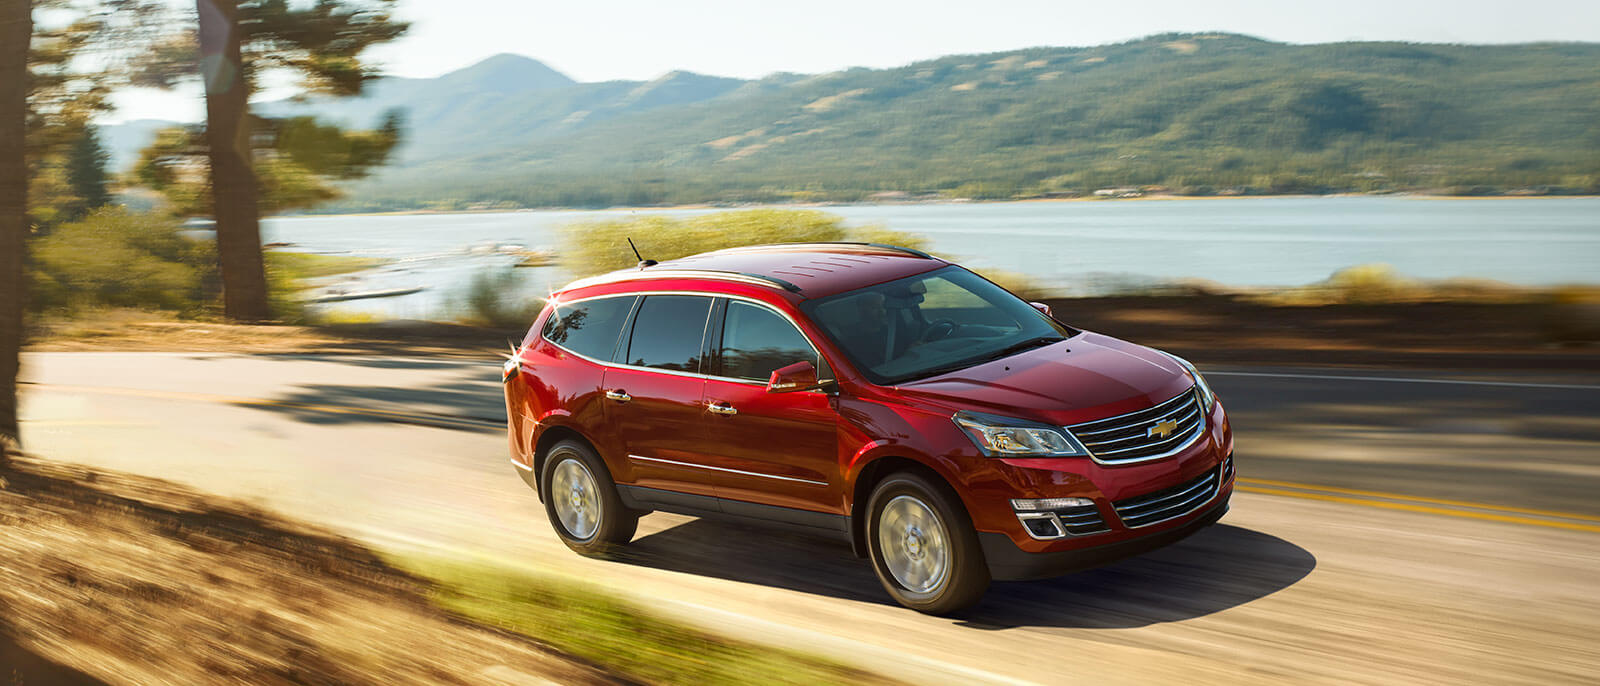 2017 Chevrolet Traverse in red